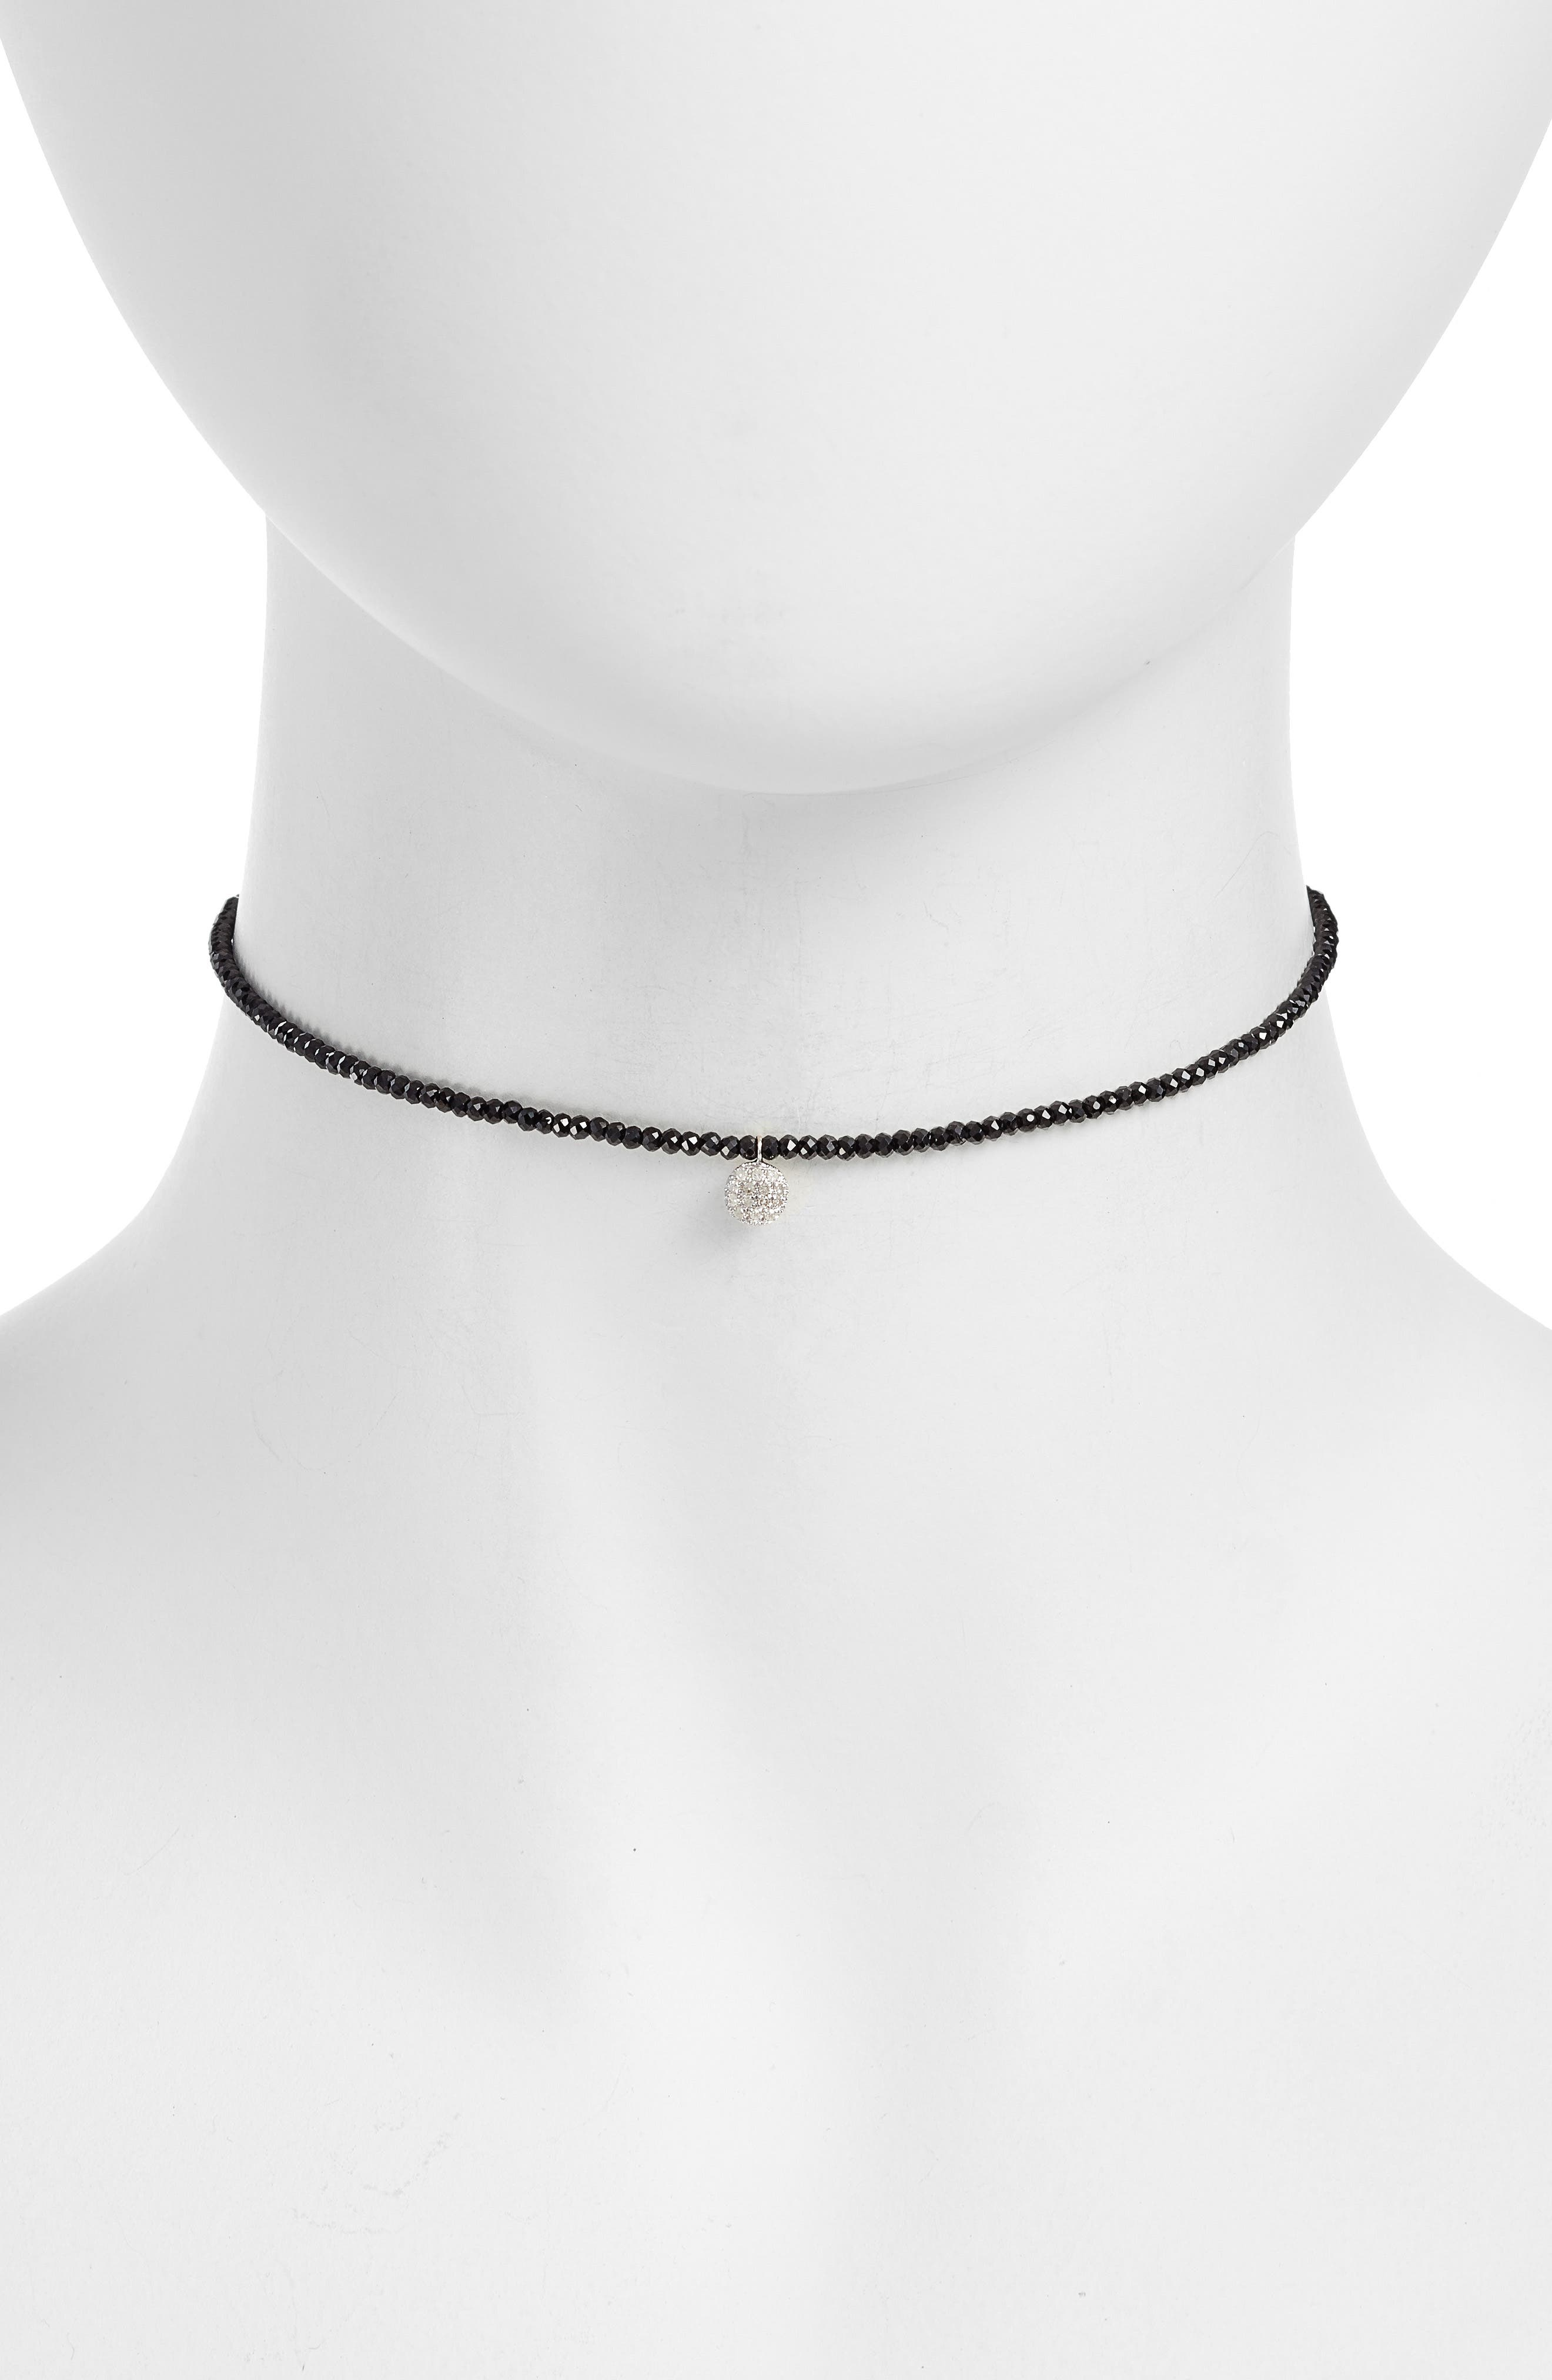 Main Image - Meira T Diamond Charm Choker Necklace